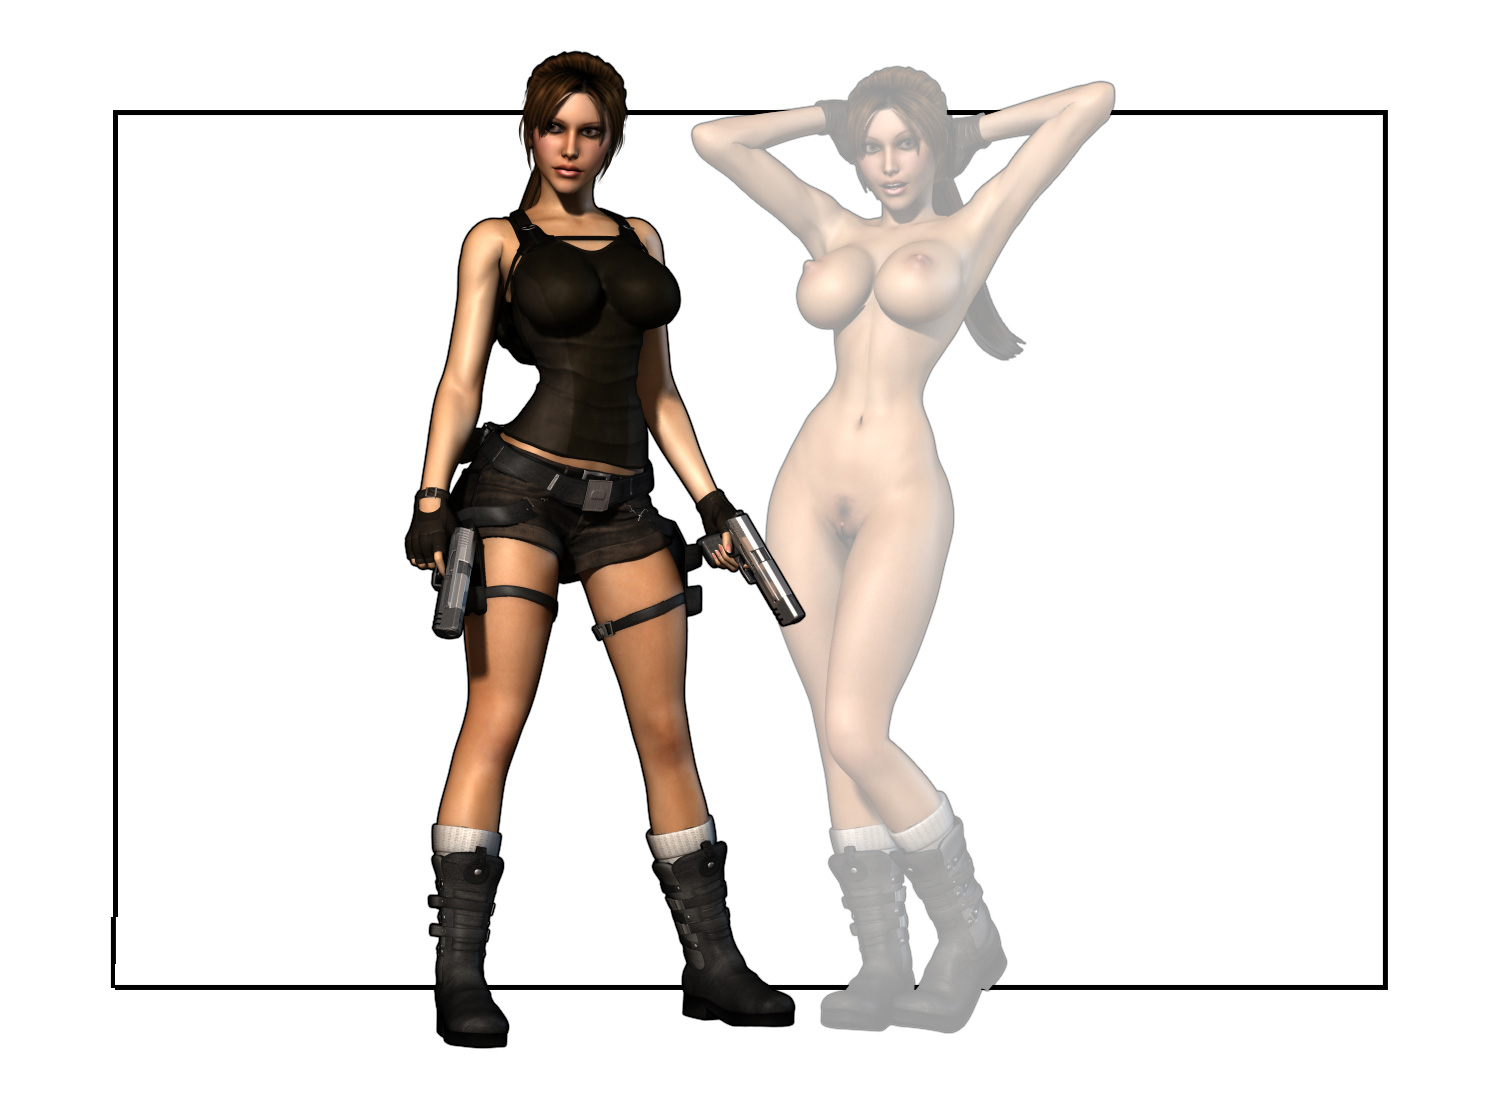 Lara croft nude legend adult picture